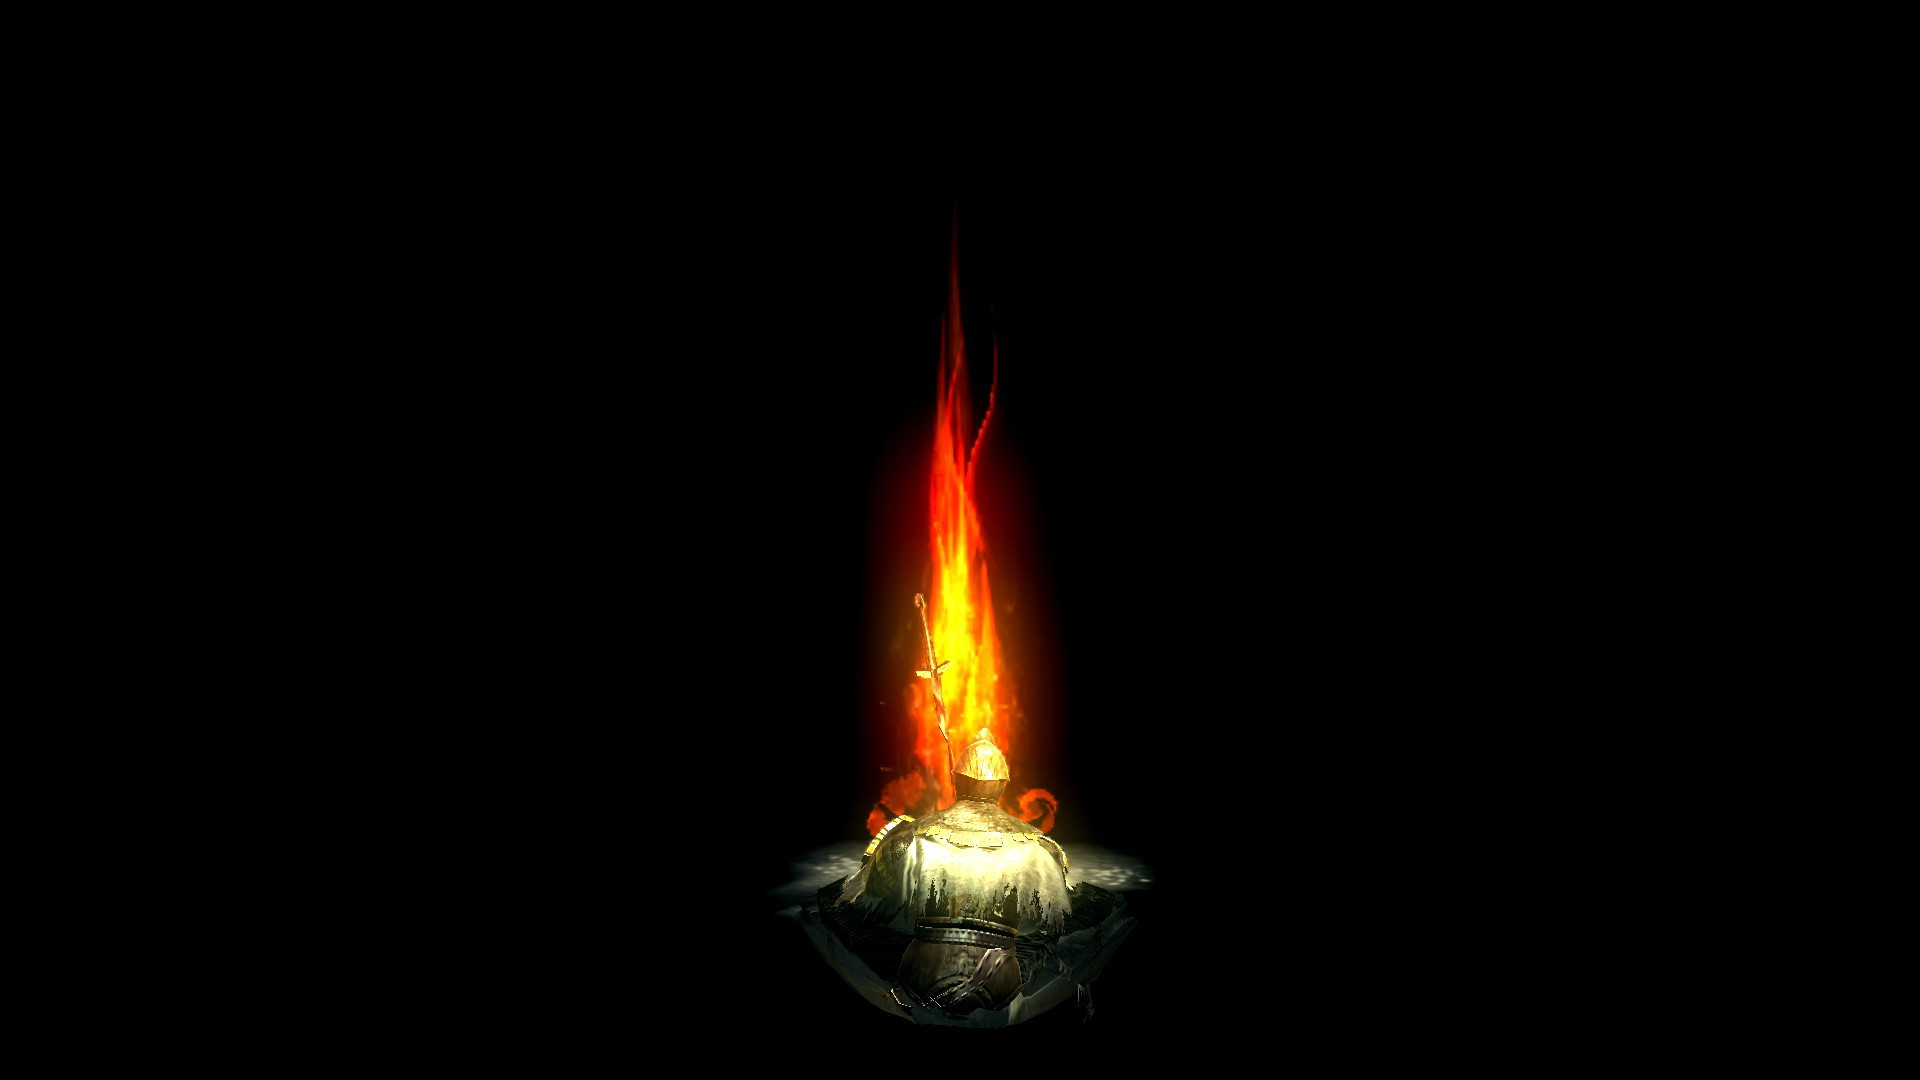 How To Make A Dynamic Wallpaper For Iphone X Dark Souls Bonfire Wallpaper 183 ① Download Free Amazing High